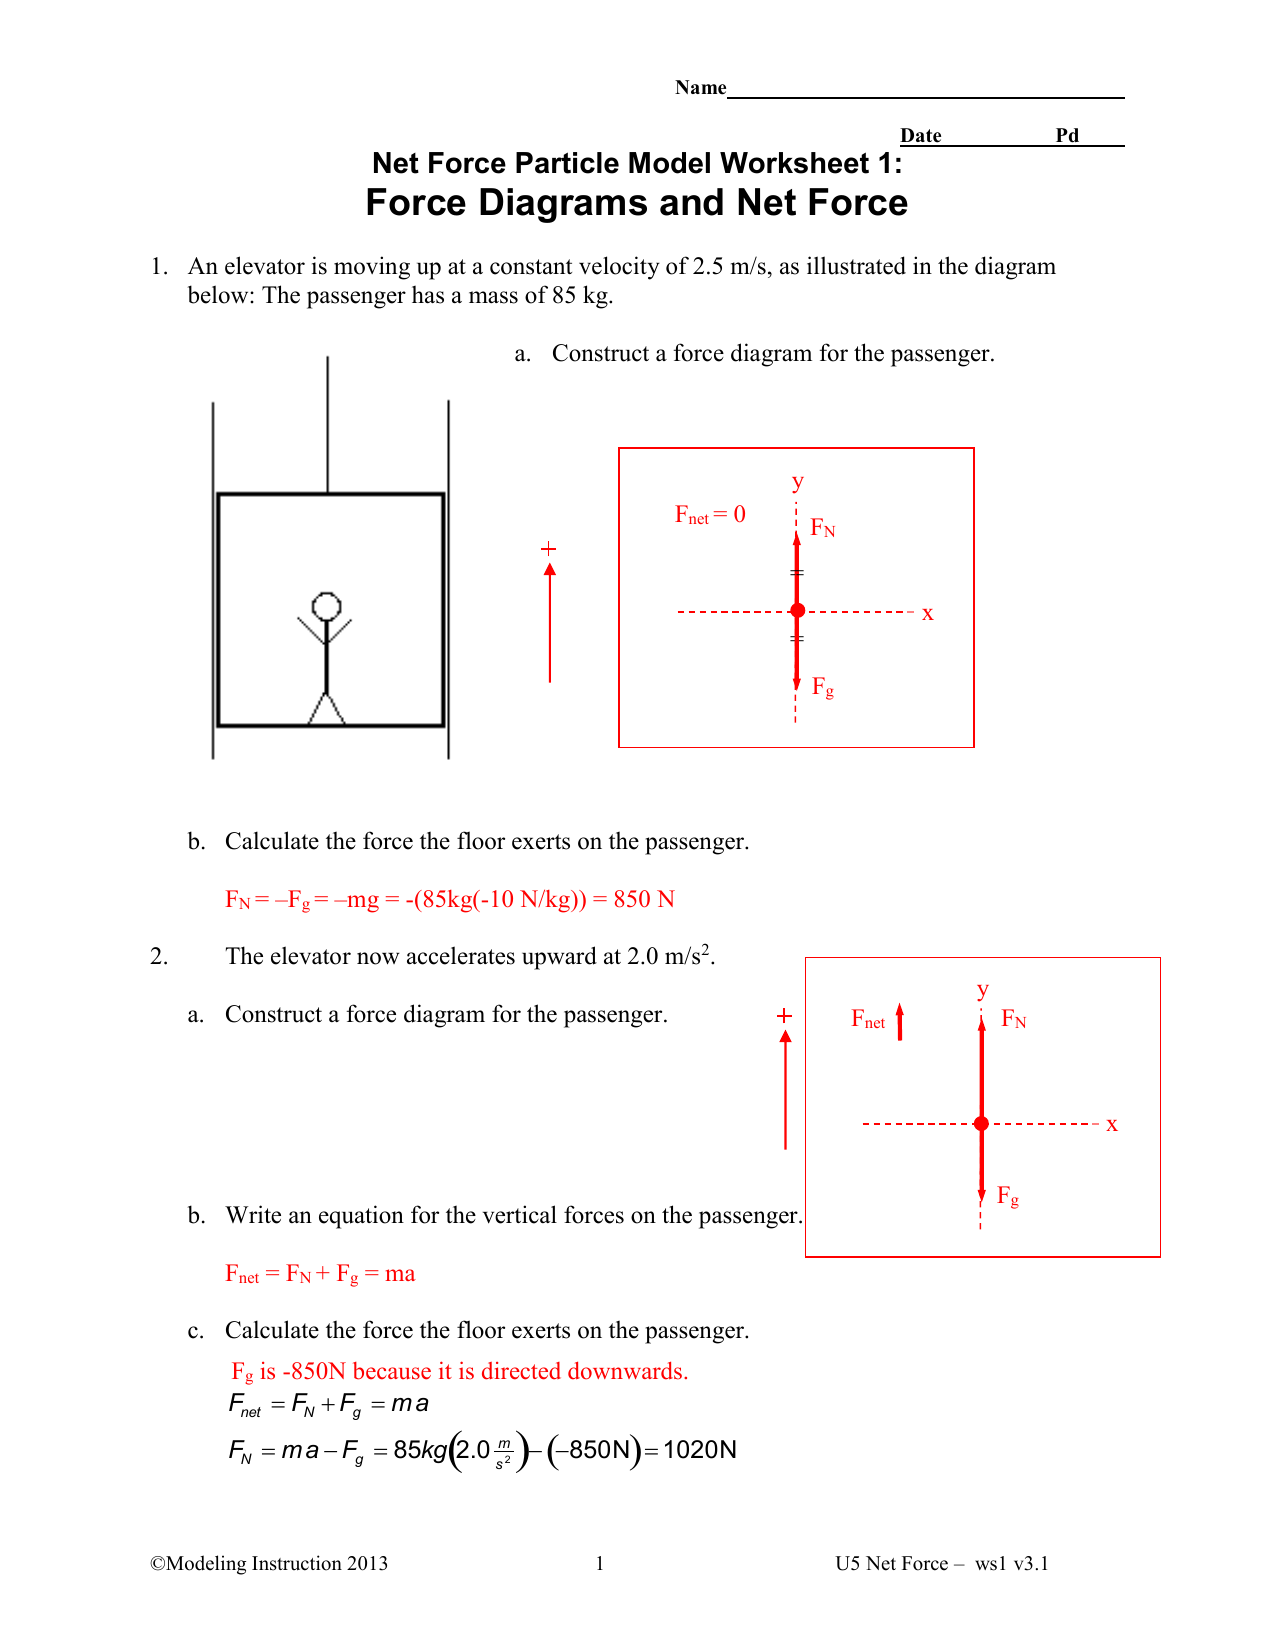 Worksheets Net Forces Worksheet force diagrams and net key